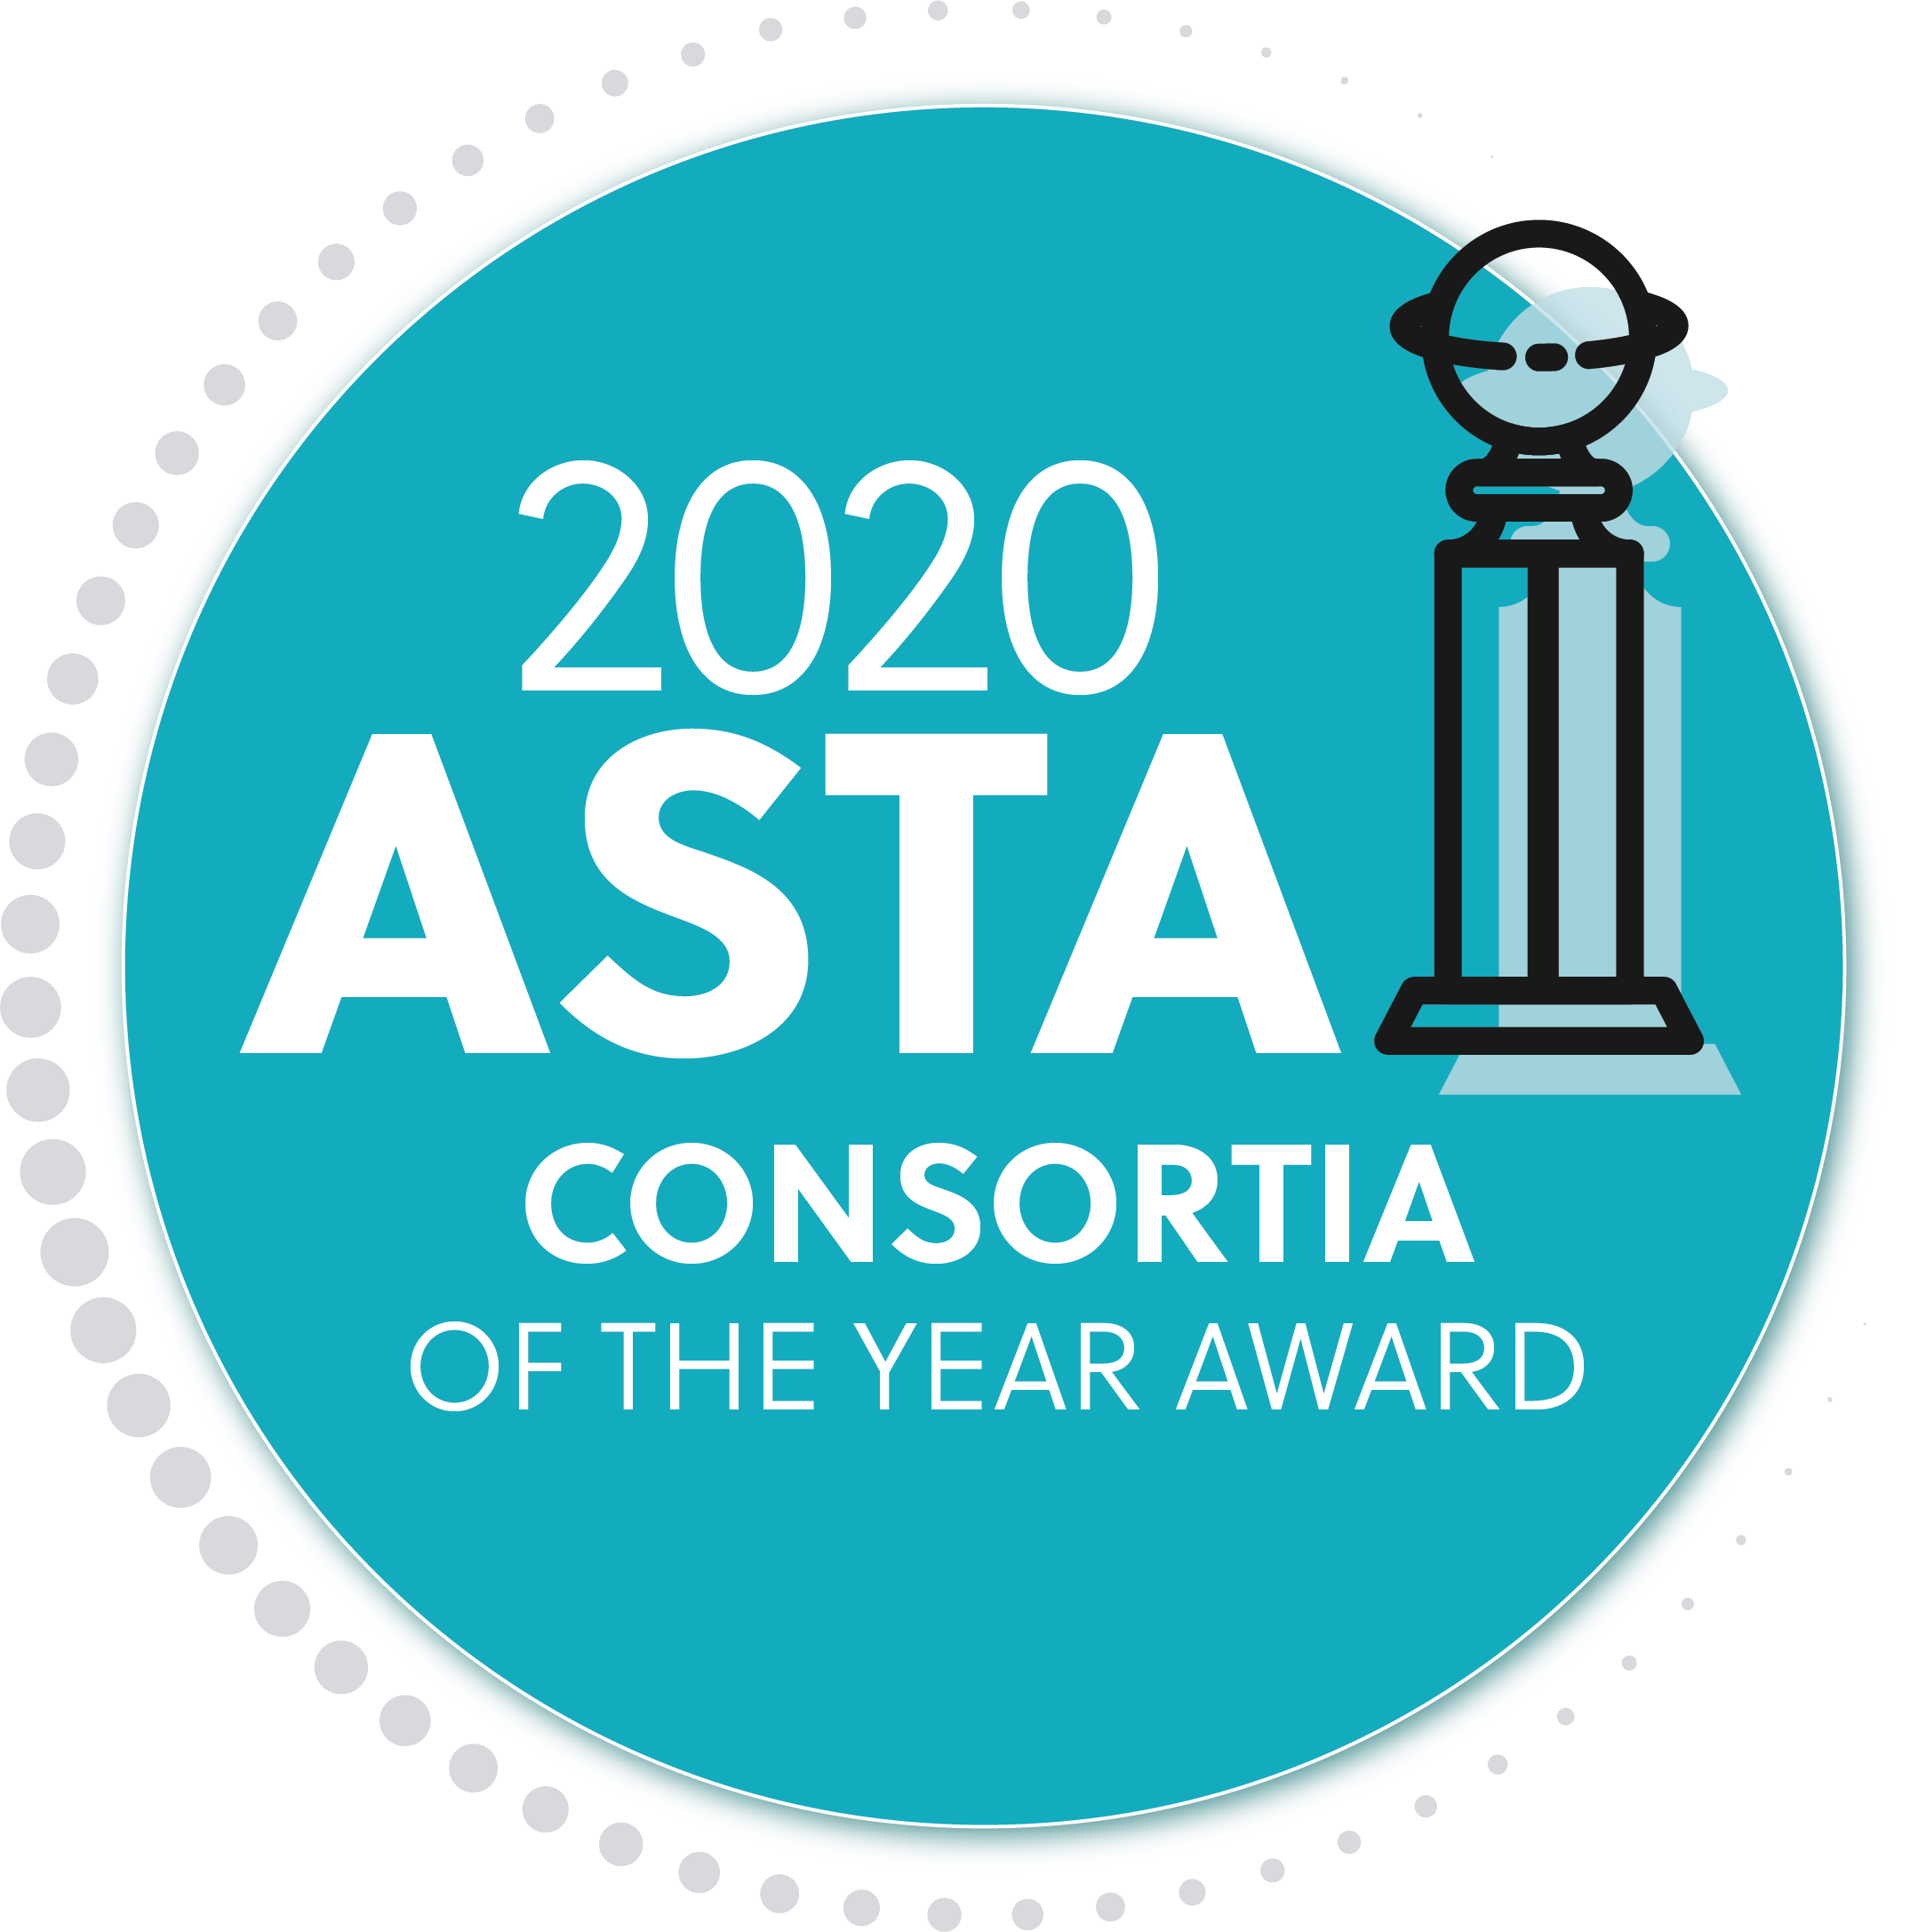 ASTA Consortia of the Year Award